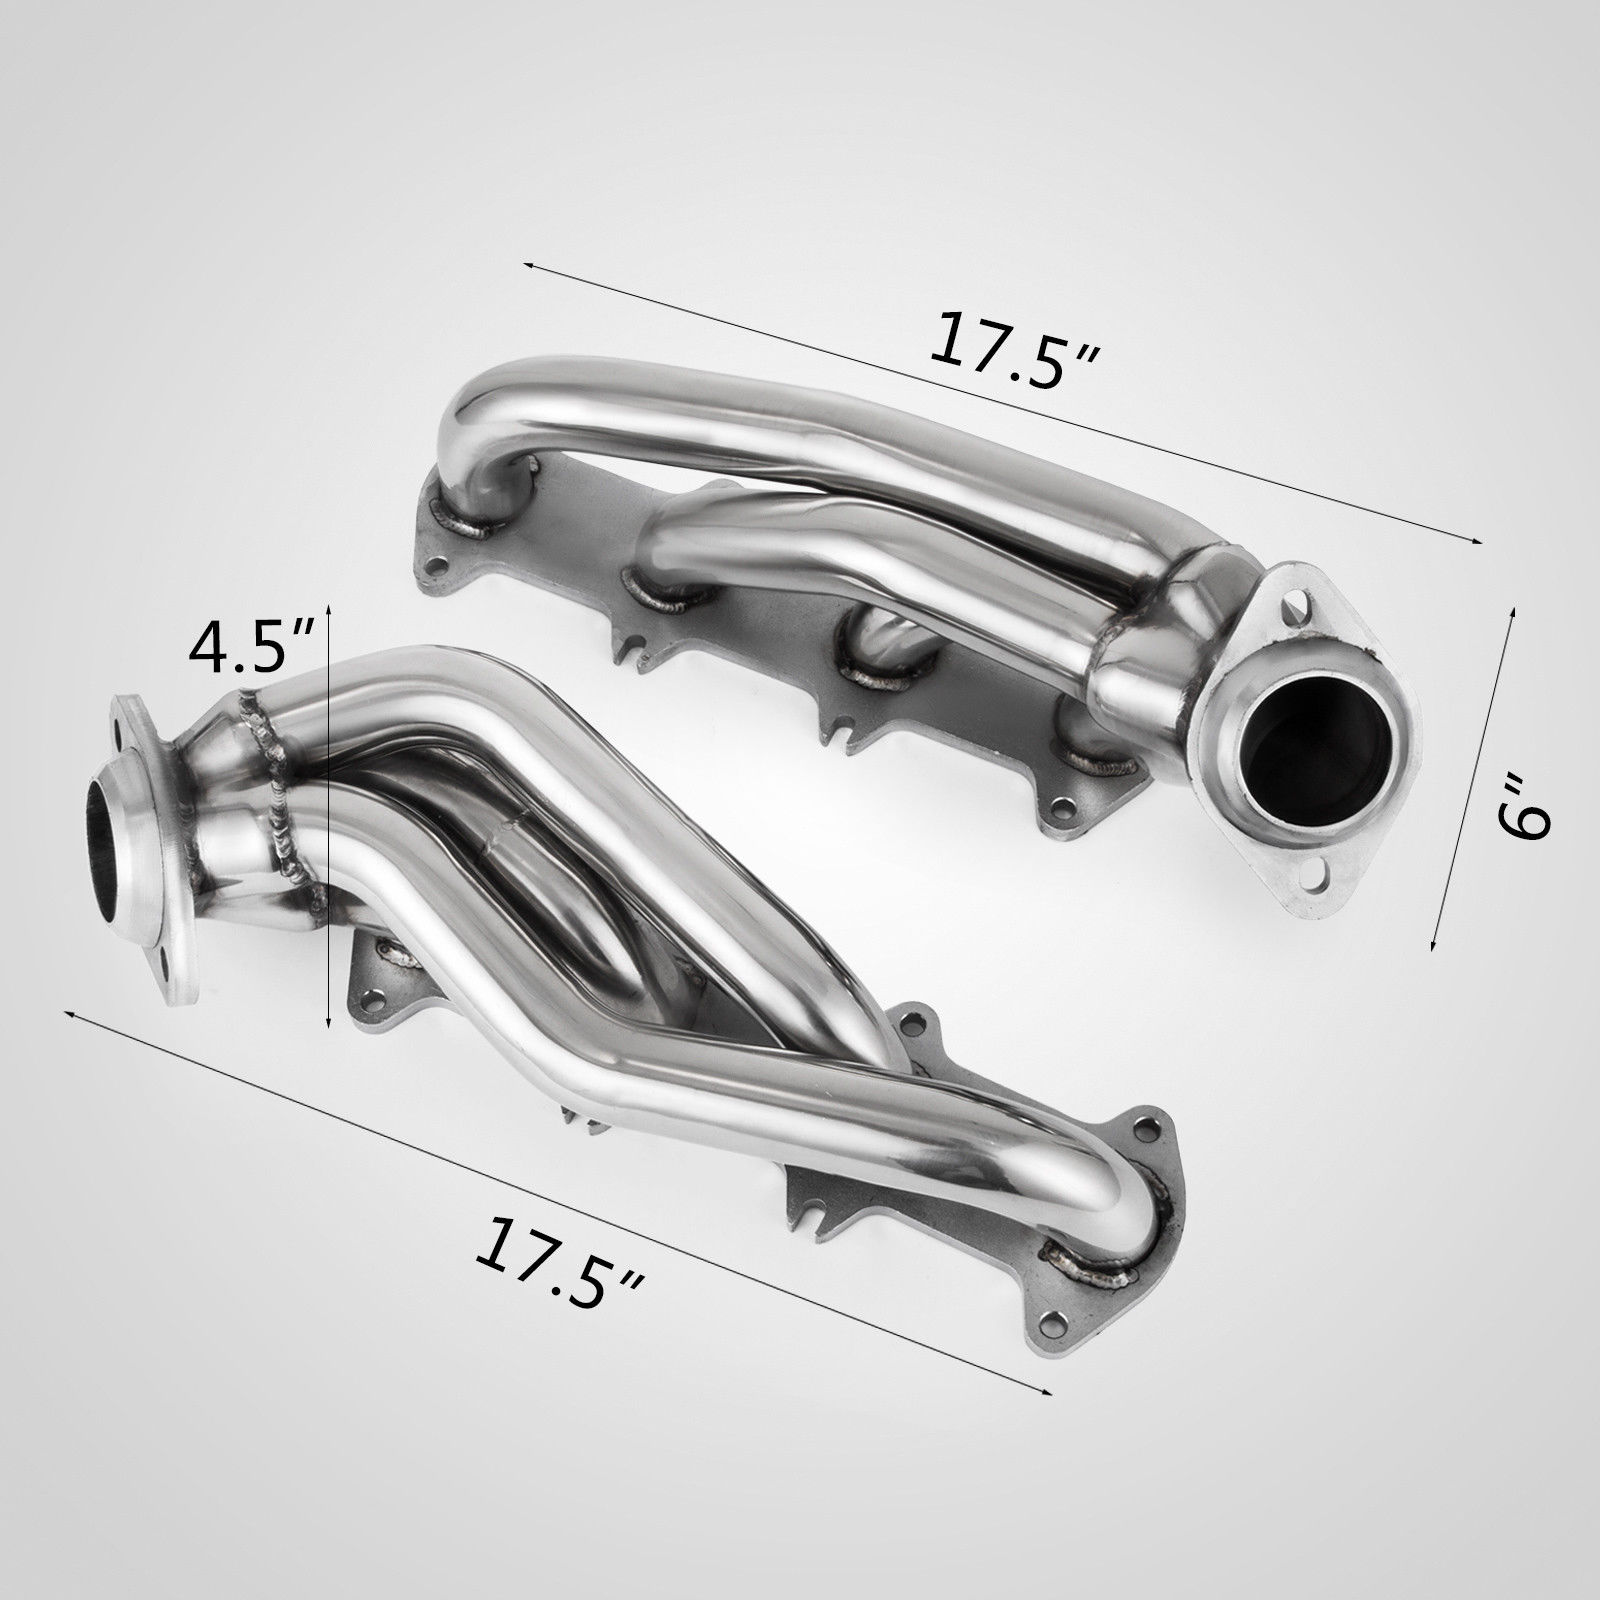 For Ford F150 04-10 5.4L V8 Exhaust Manifolds Headers Shorty Truck Car